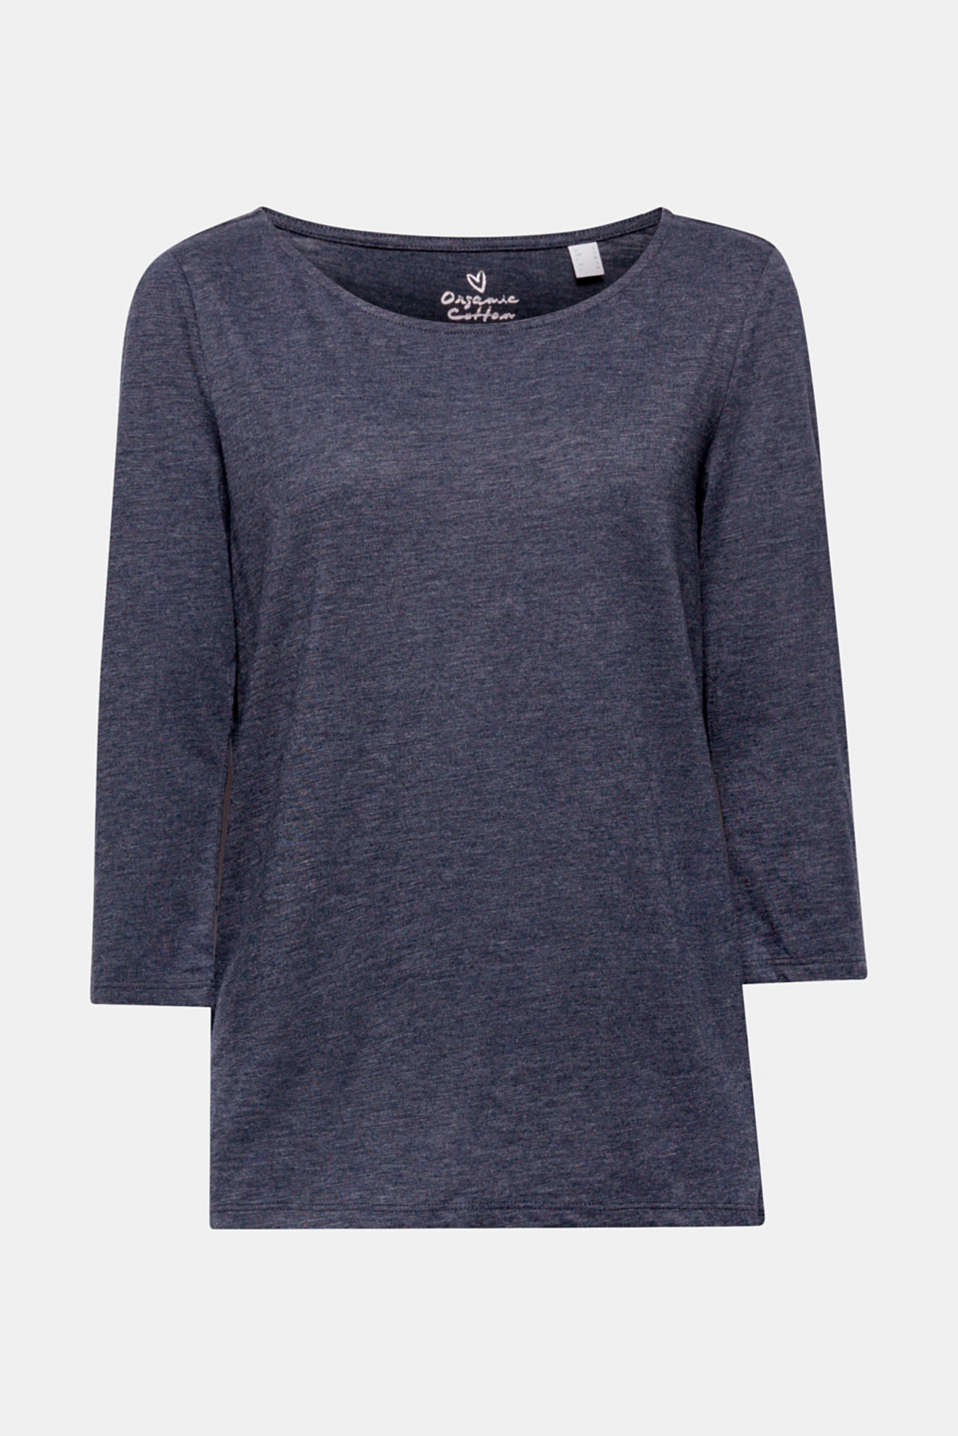 Casual and sustainable: this loose, long sleeve top containing environmentally-friendly, premium organic cotton is a brilliant basic